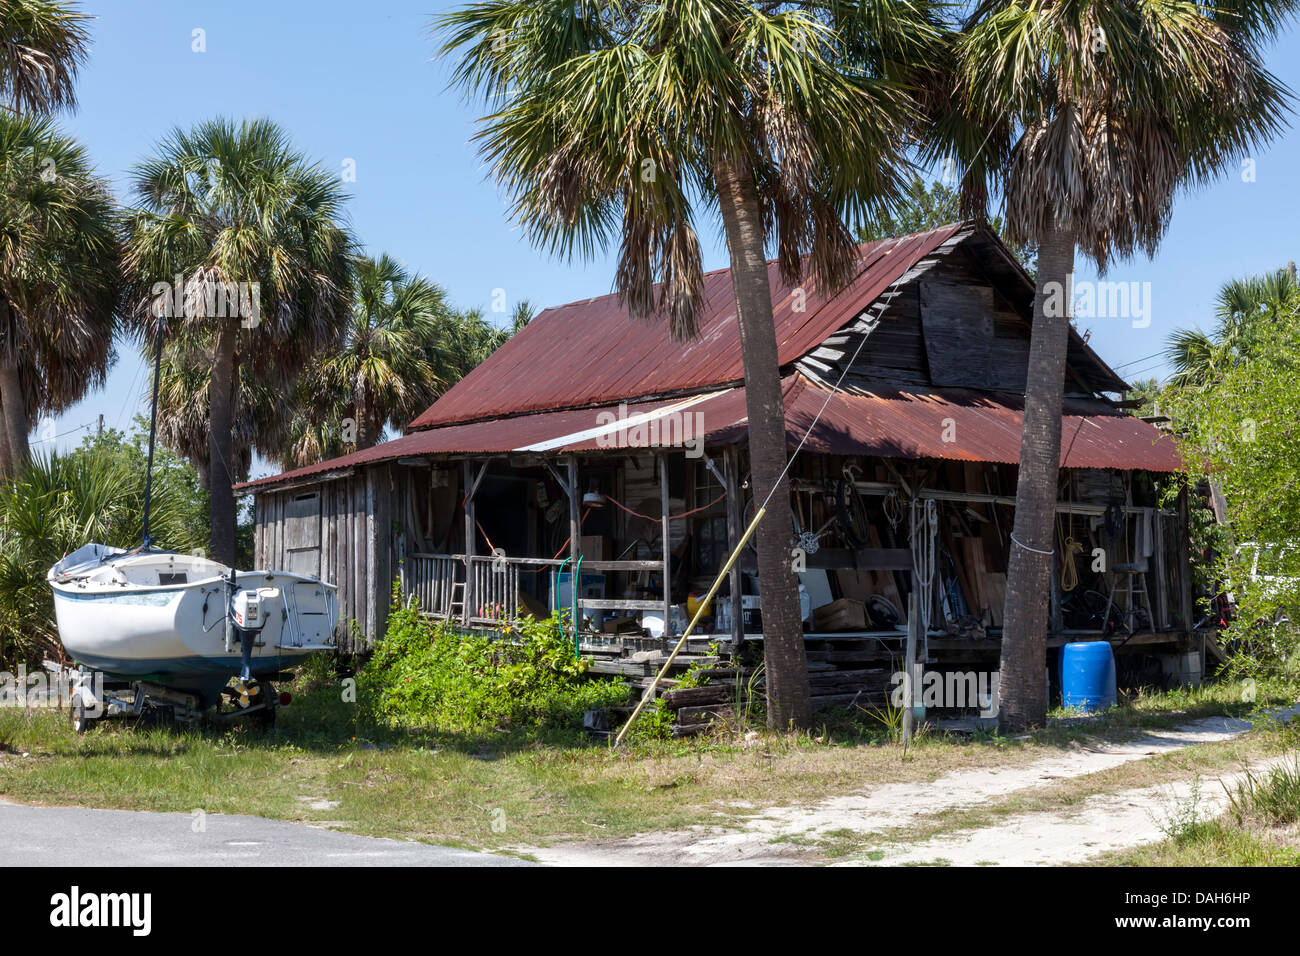 An old rundown wood frame house with rusting metal roof . A sailboat on a trailer and junk clutter the porch and - Stock Image